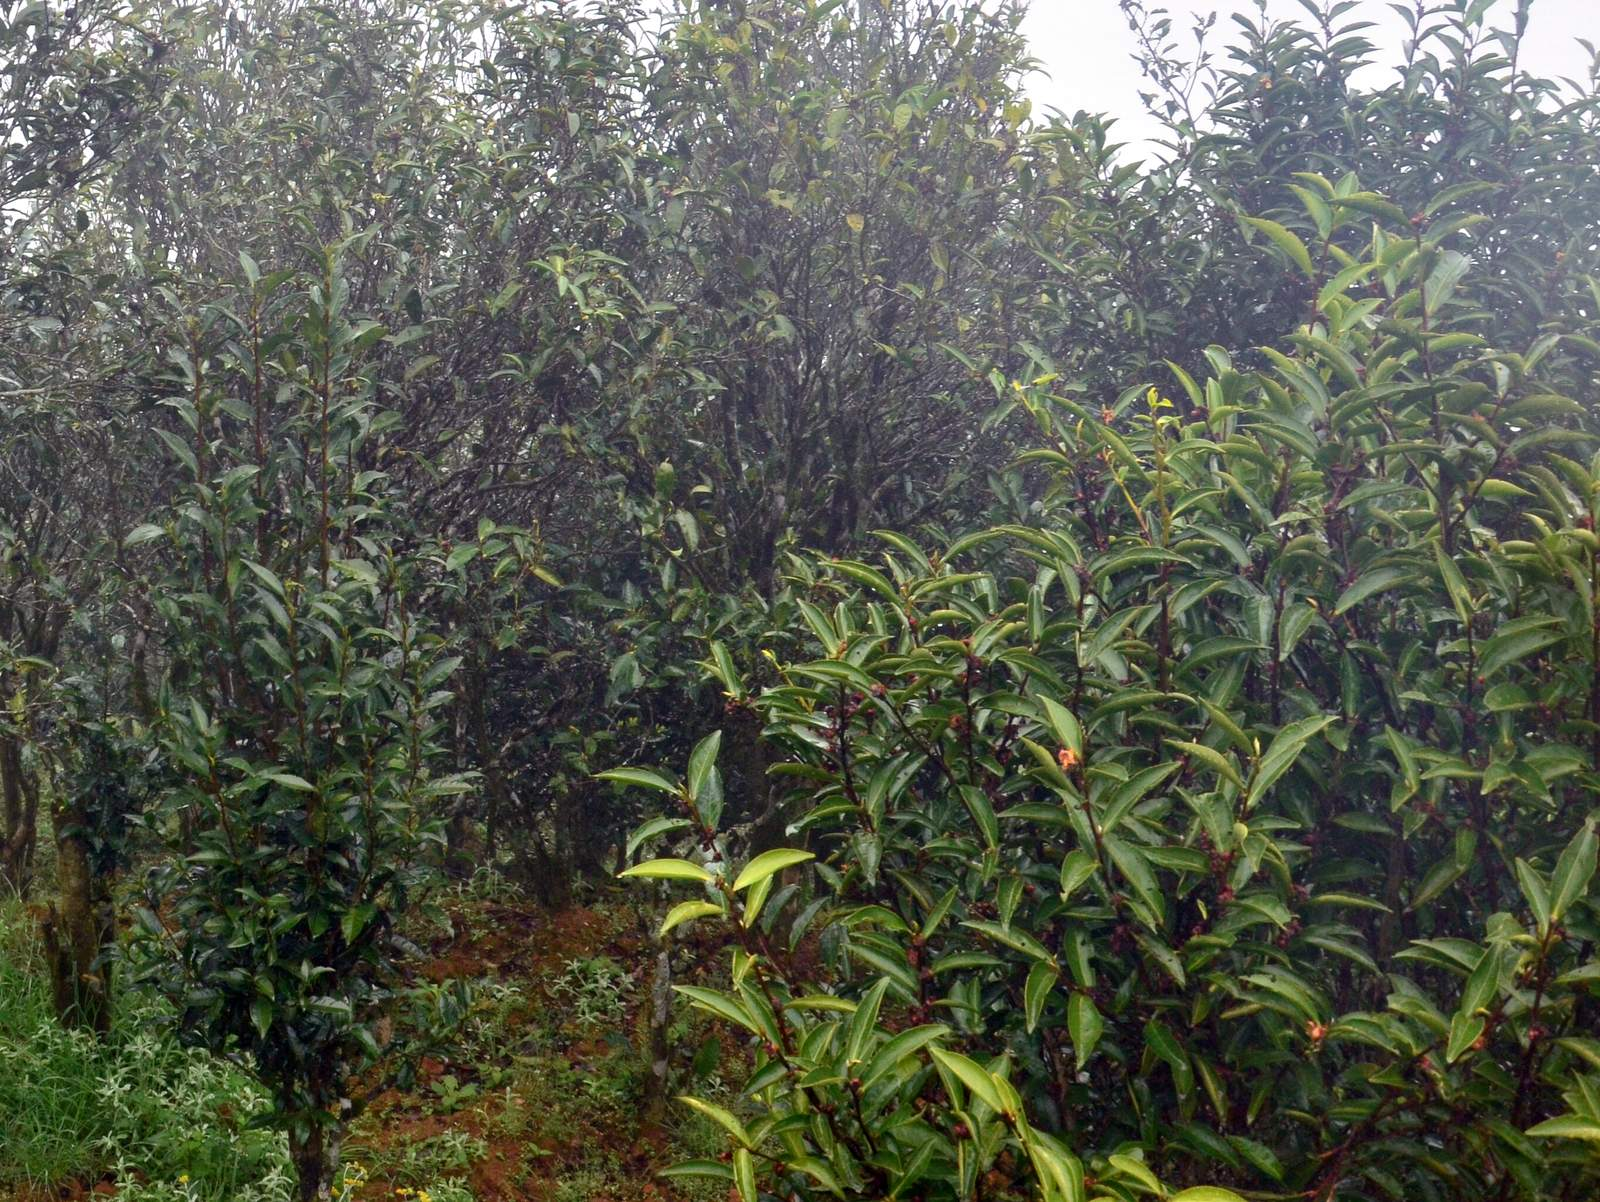 Honey Orchid, Shui Xian Almond, Duck Shit an Chicken case Dancong Oolong ur tea is harvested and processed in a small village between Fenguang town and Wudong Mountain by Cha-Shifu.com (7).JPG